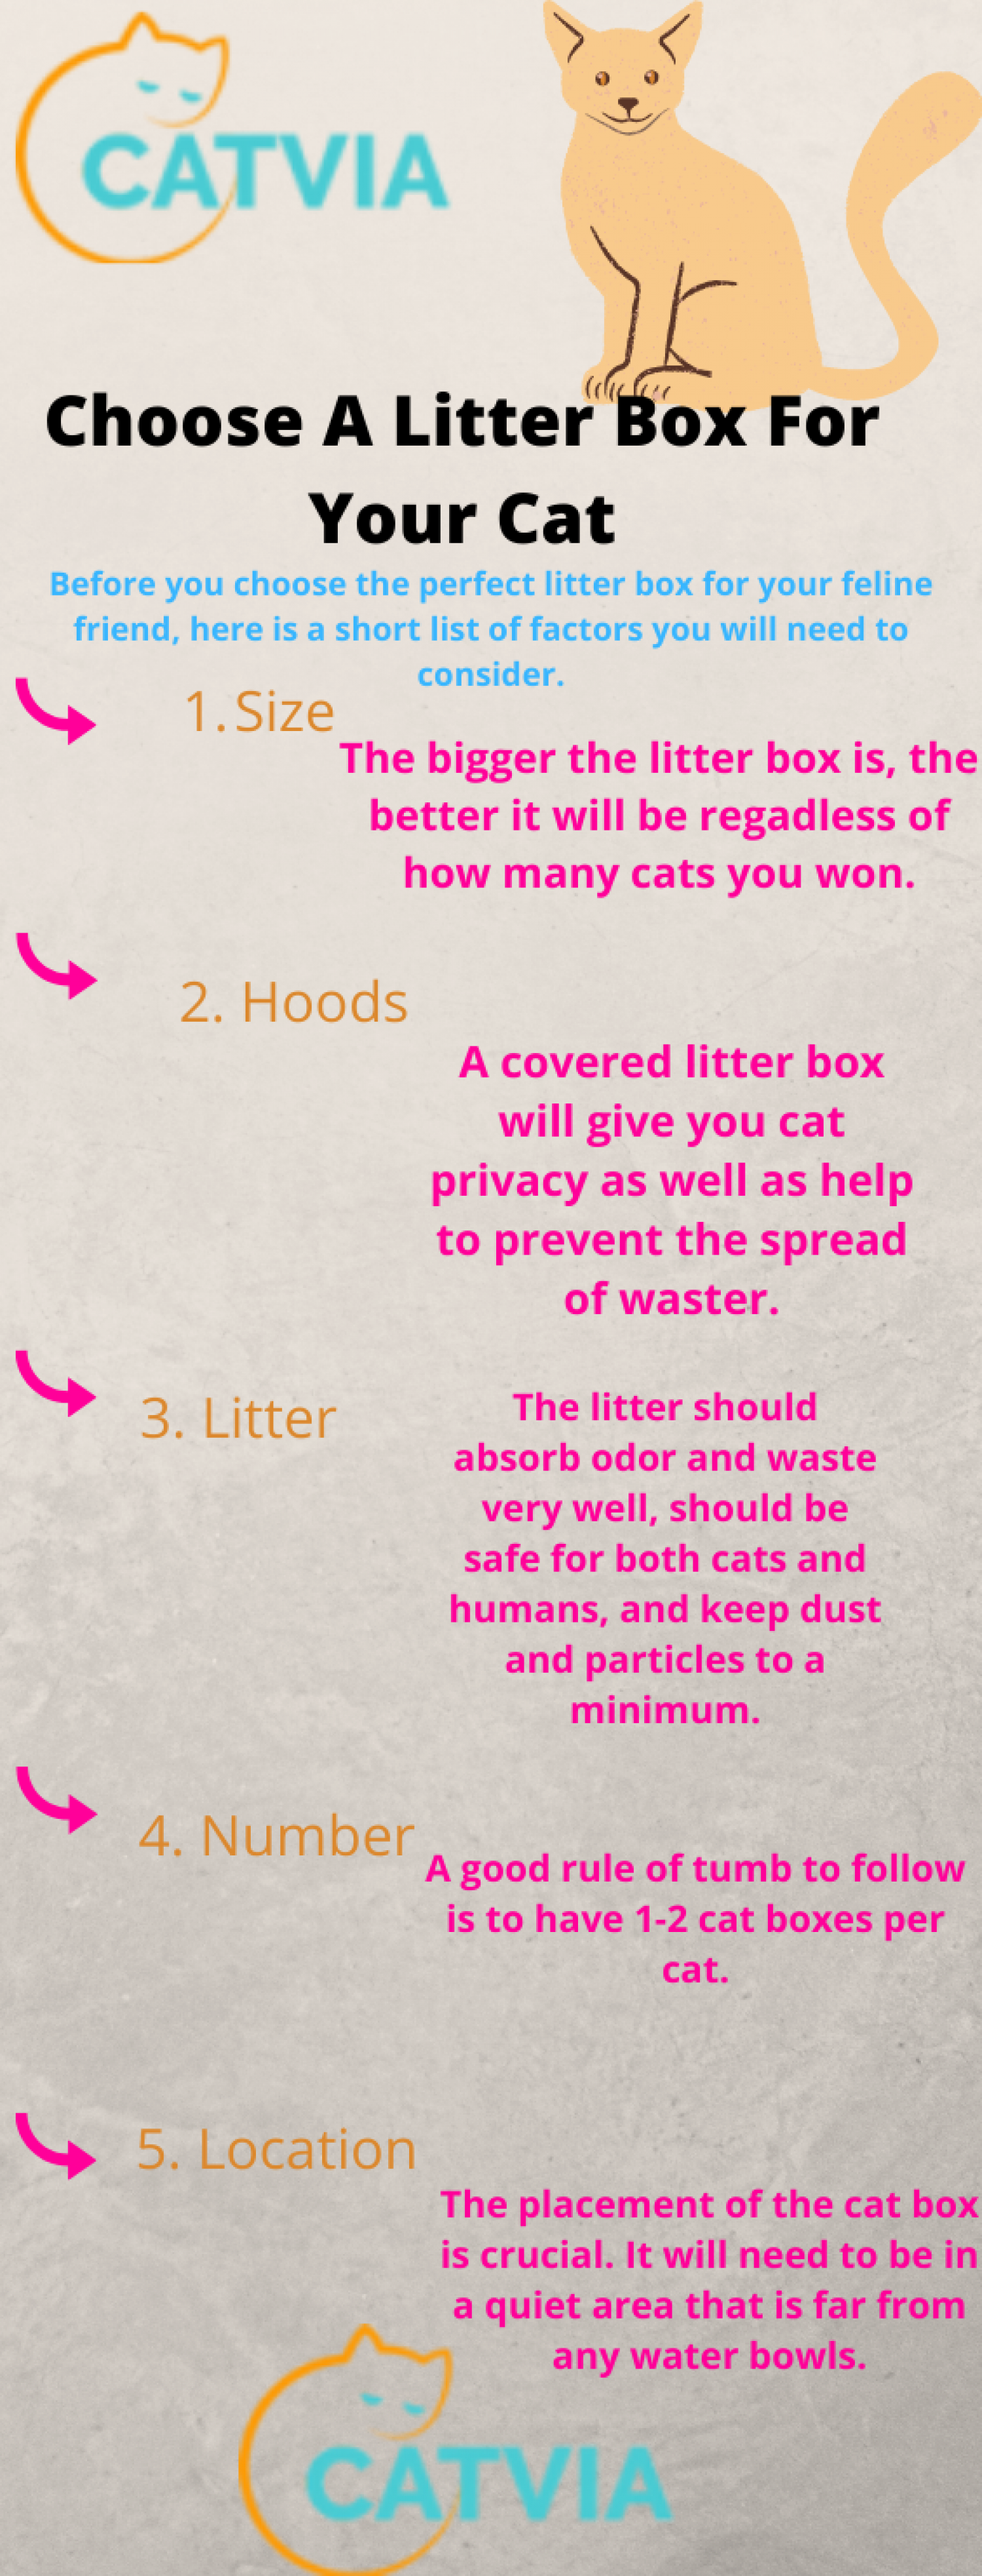 Choose A Litter Box For Your Cat Infographic